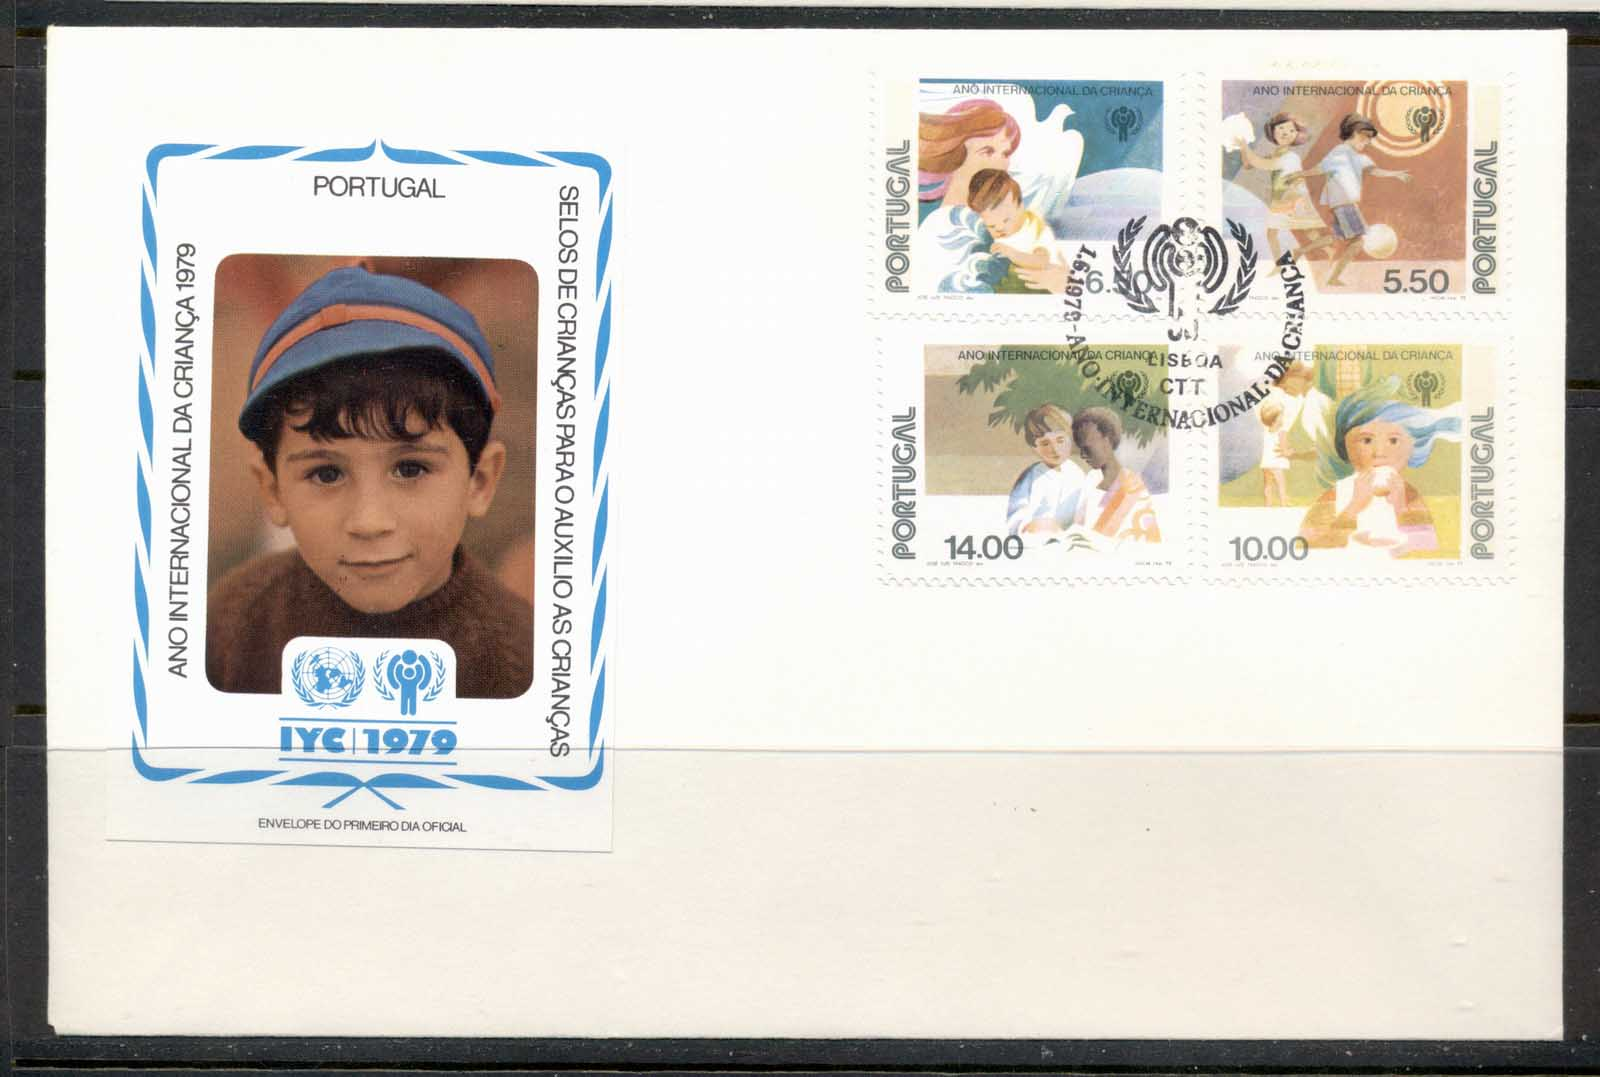 Portugal 1979 IYC International year of the Child FDC